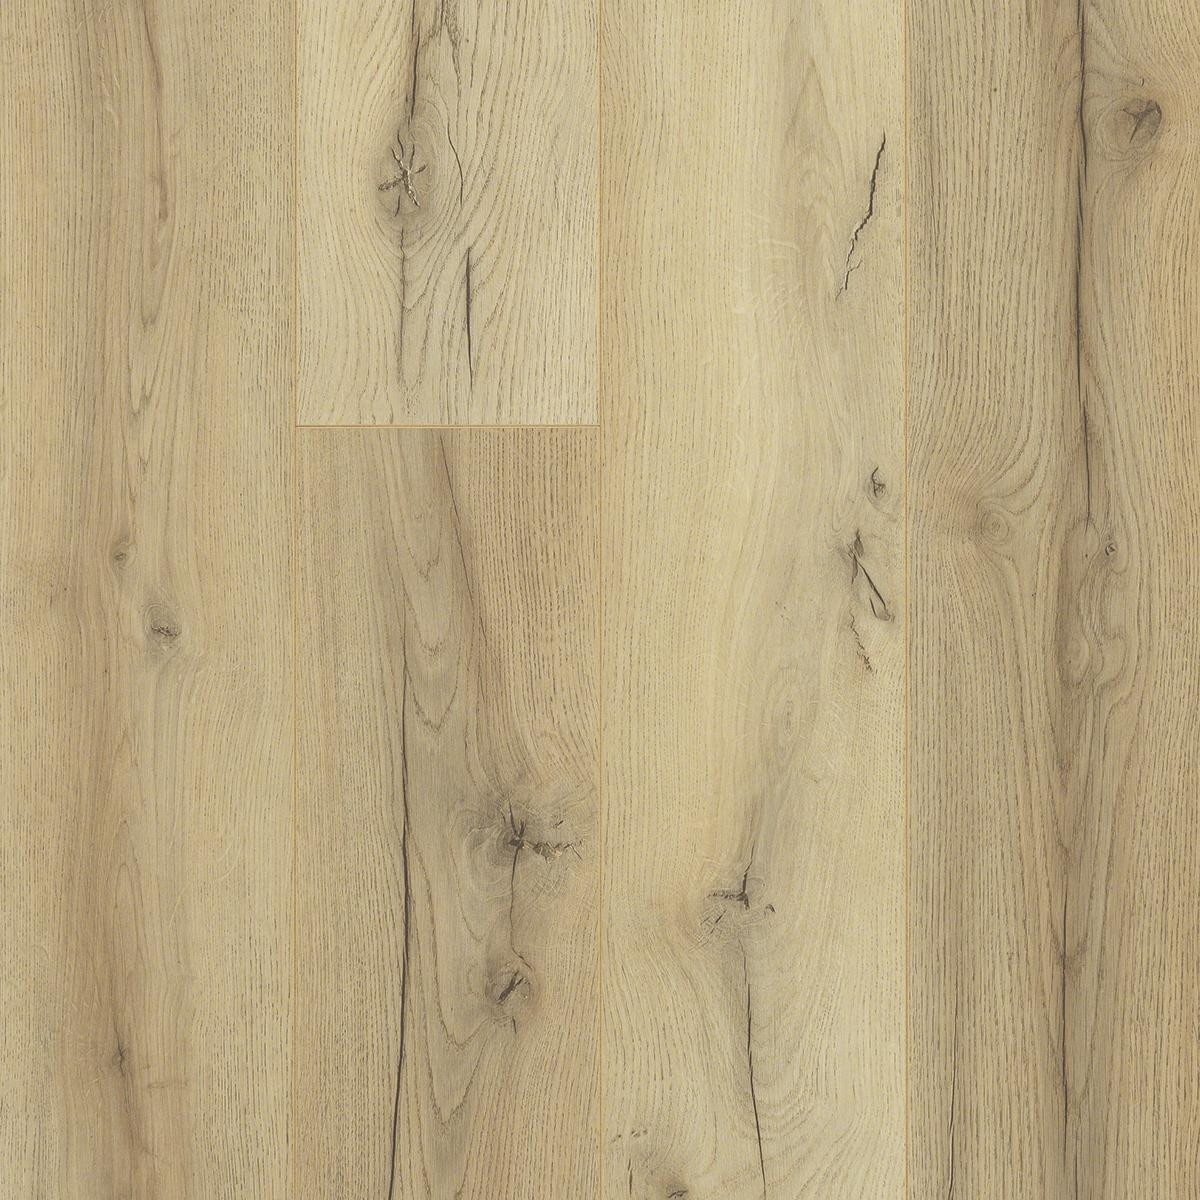 Shaw Bamboo Hardwood Flooring Of Shaw Vision Works Warm Gold Laminate Nebraska Furniture Mart with Regard to L